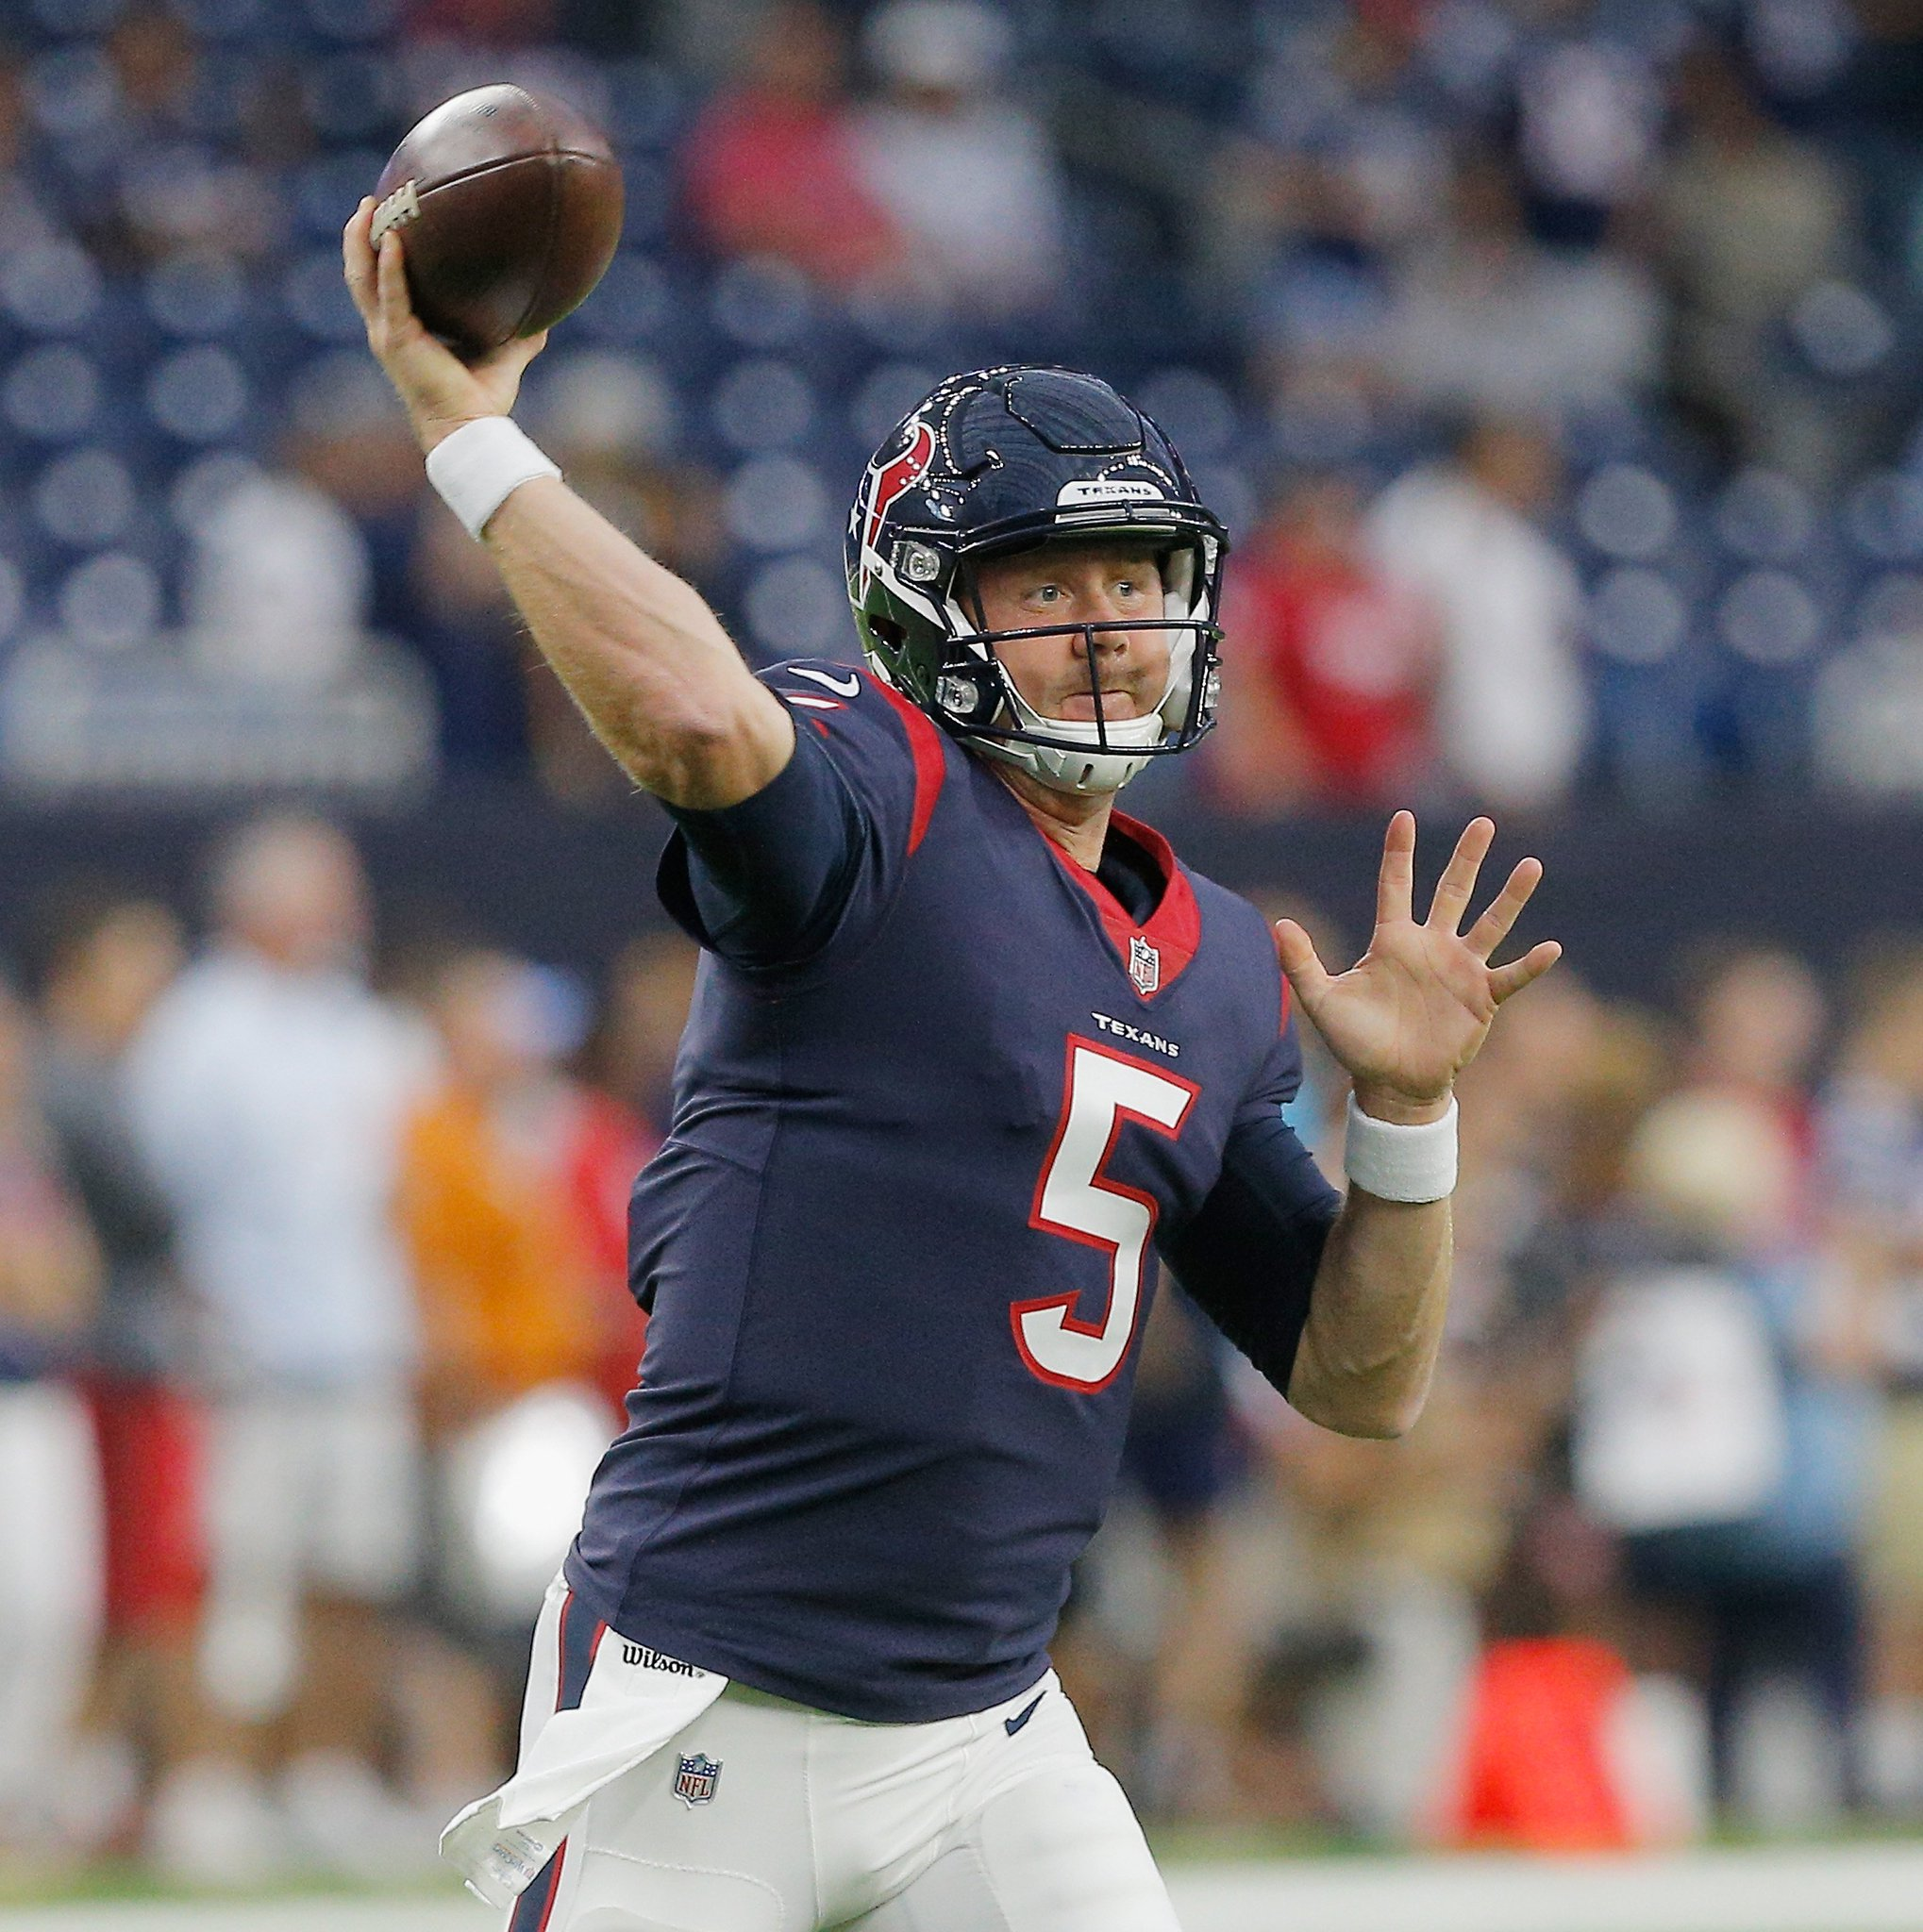 Titans plan on signing QB Brandon Weeden with Marcus Mariota day-to-day, per @AdamSchefter https://t.co/1v2GQQ660R https://t.co/yQwAwaJZW5